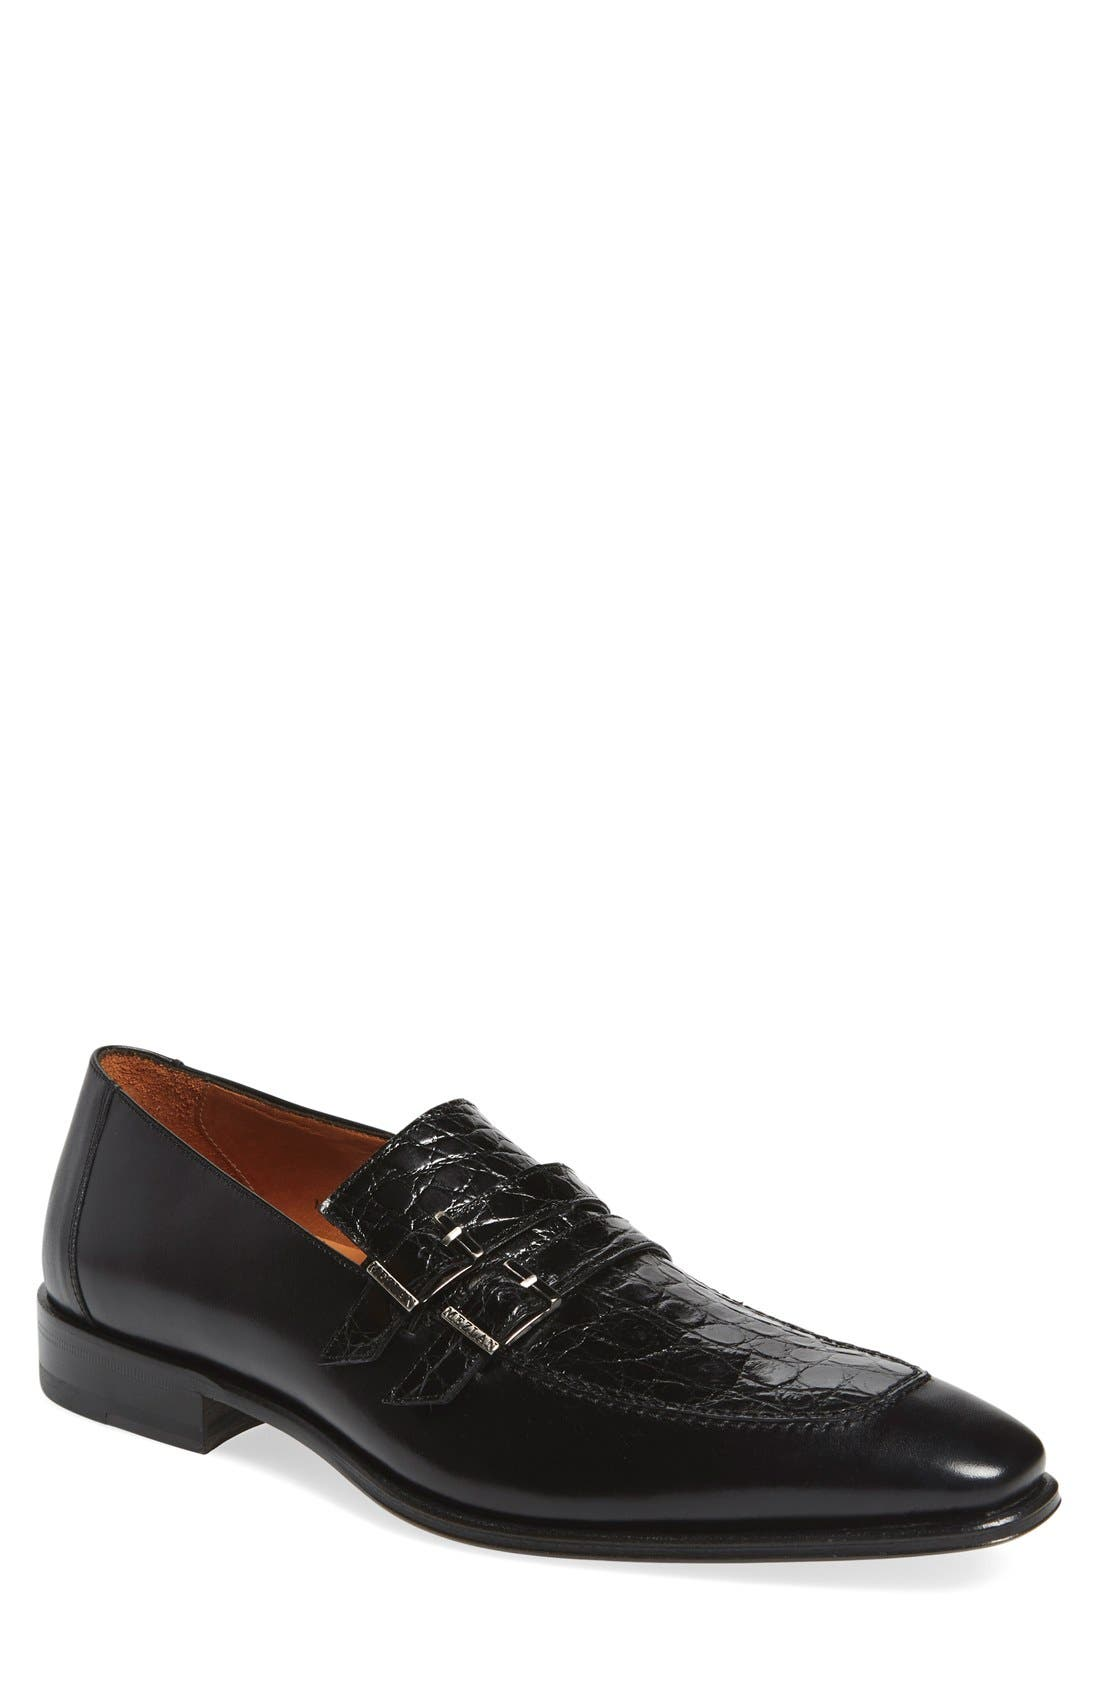 Alternate Image 1 Selected - Mezlan 'Berenger' Loafer (Men)